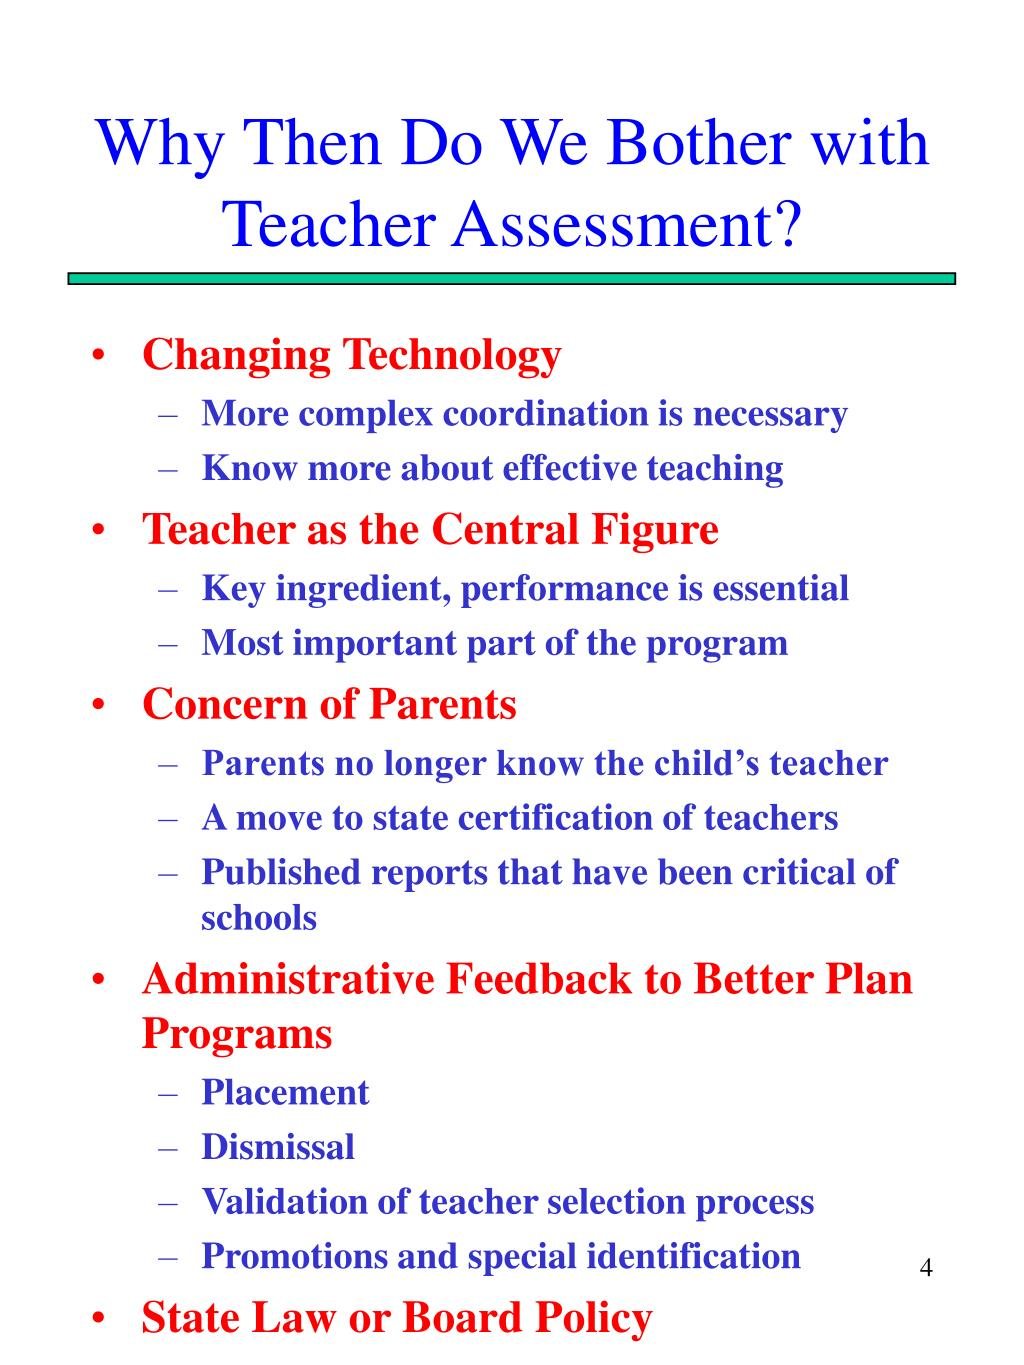 Why Then Do We Bother with Teacher Assessment?